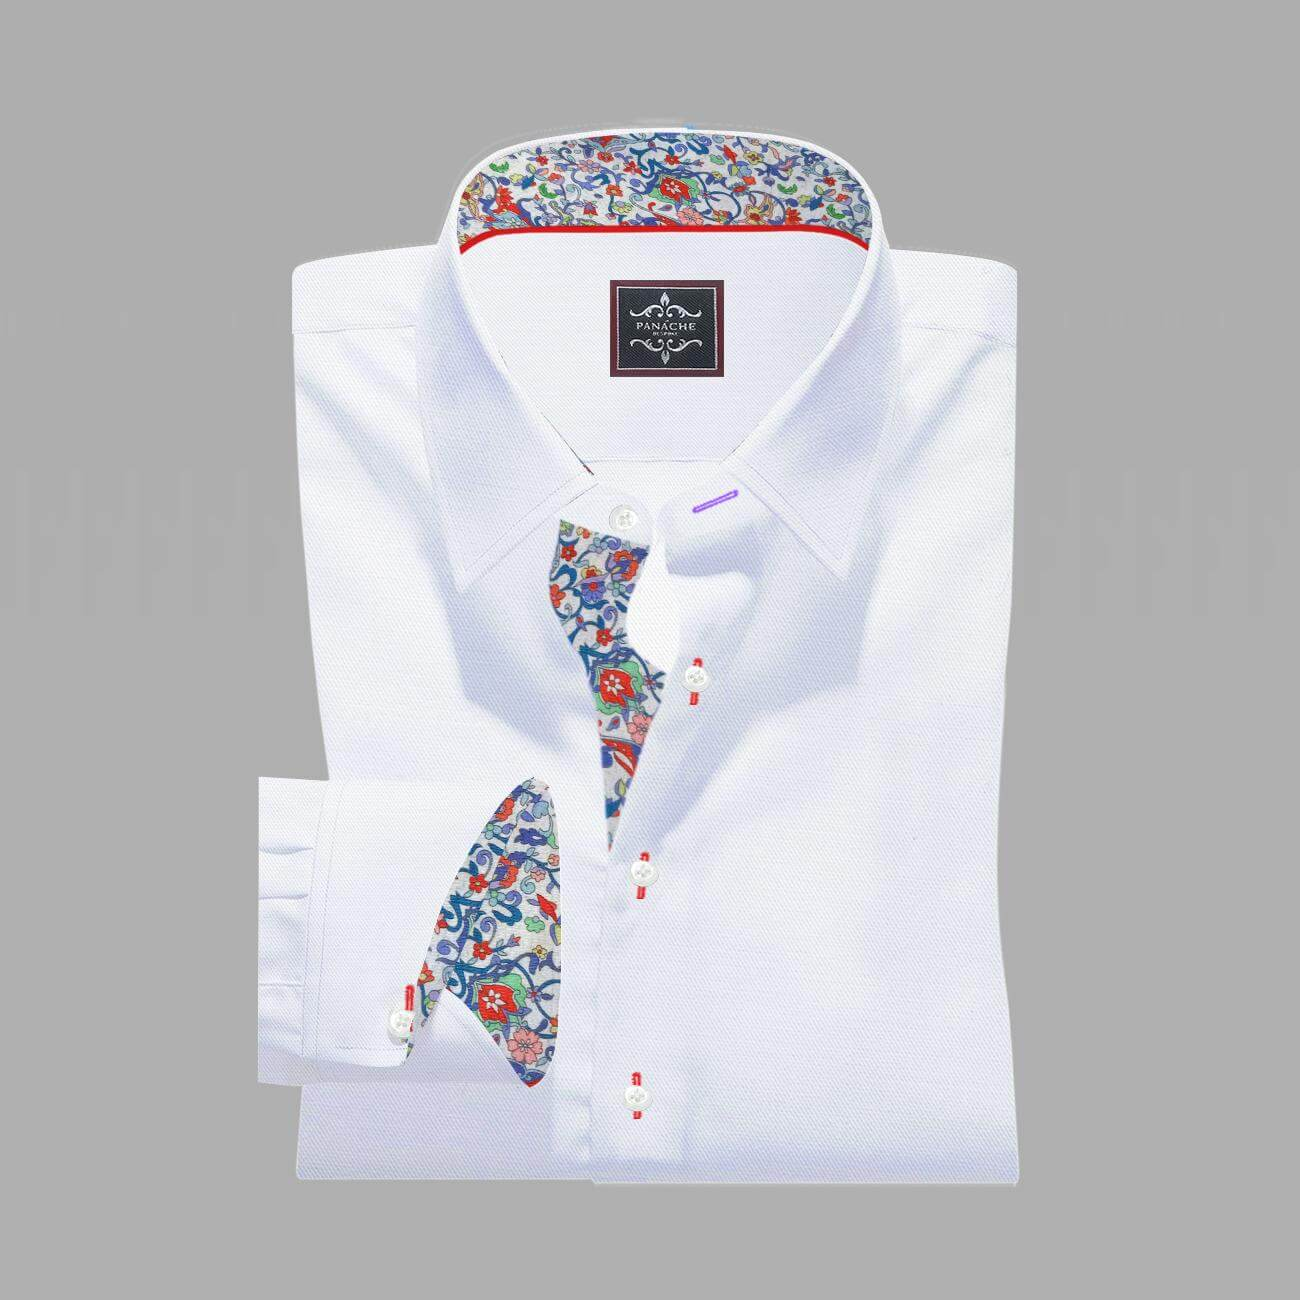 Luxury-White Twill Egyptian Cotton-Shirt